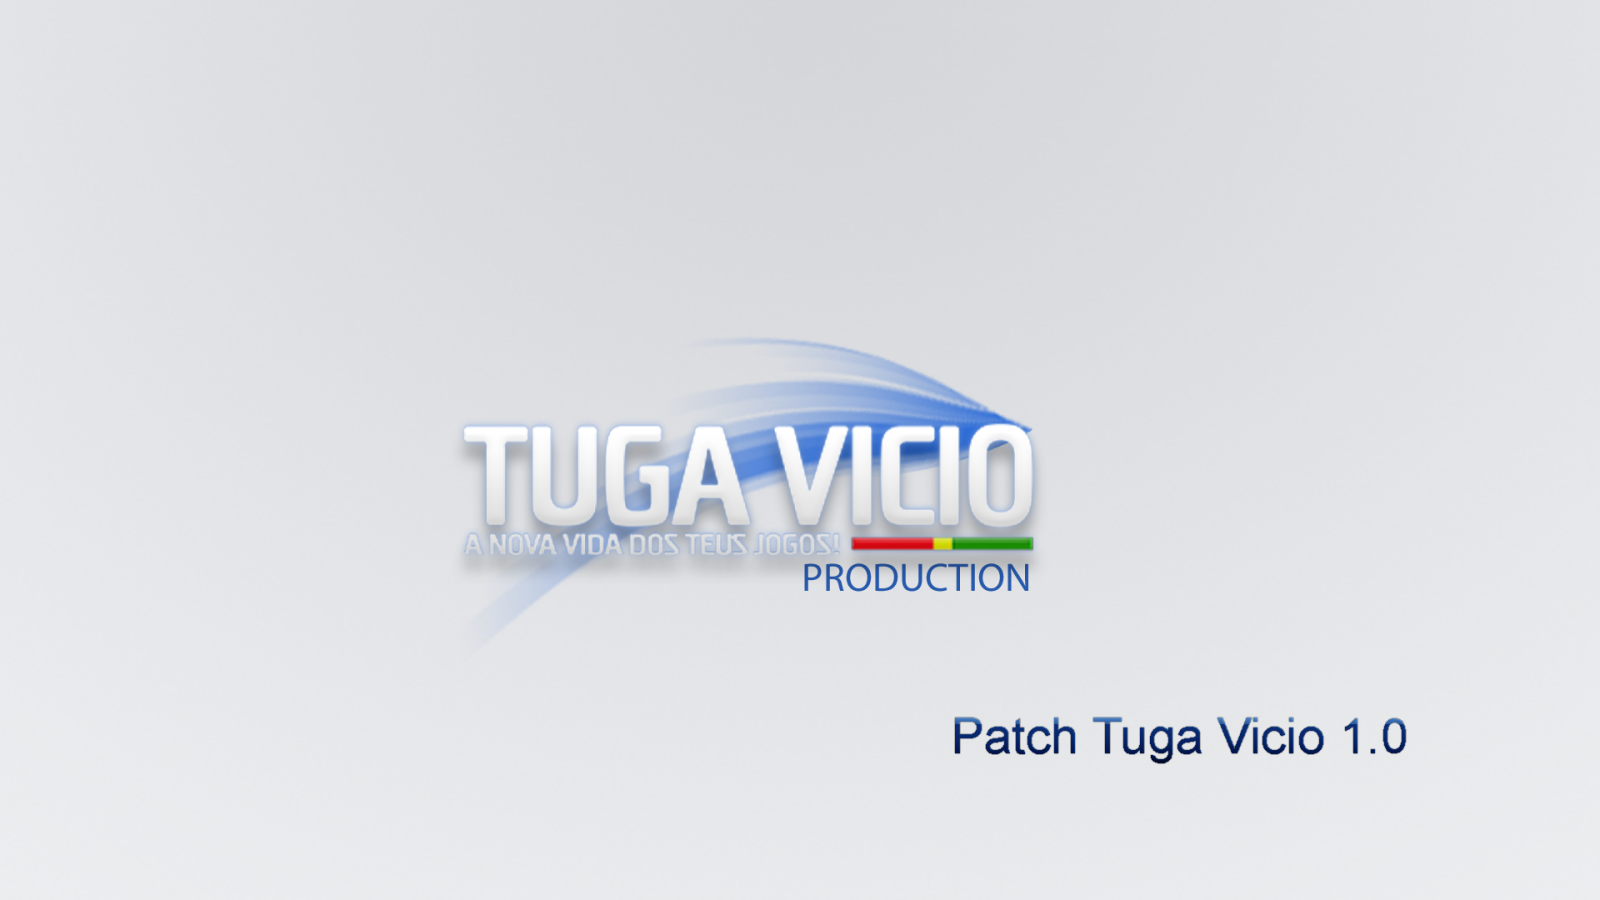 Patch Tuga Vicio 1.0 (PES17 PC) Released 01.11.2016 2upxpg7